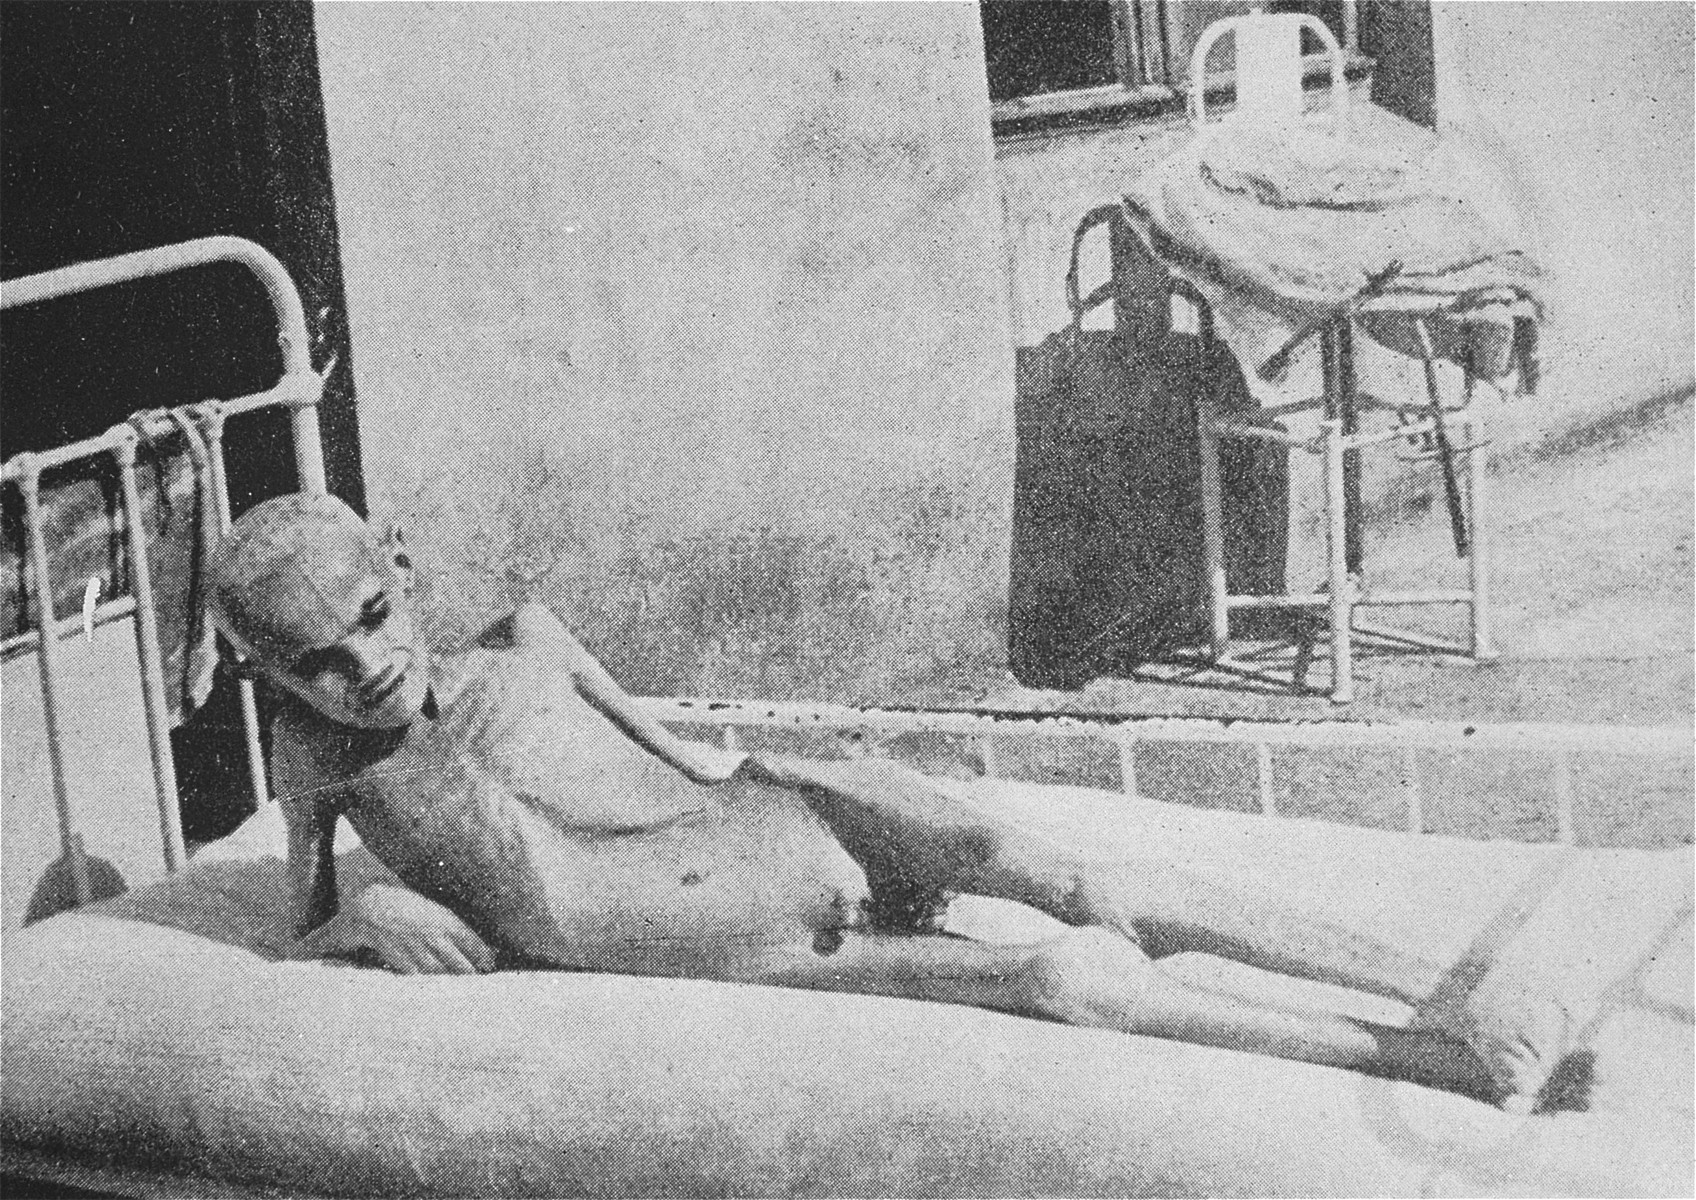 A starving child lies in a bed in a hospital in the Warsaw ghetto.